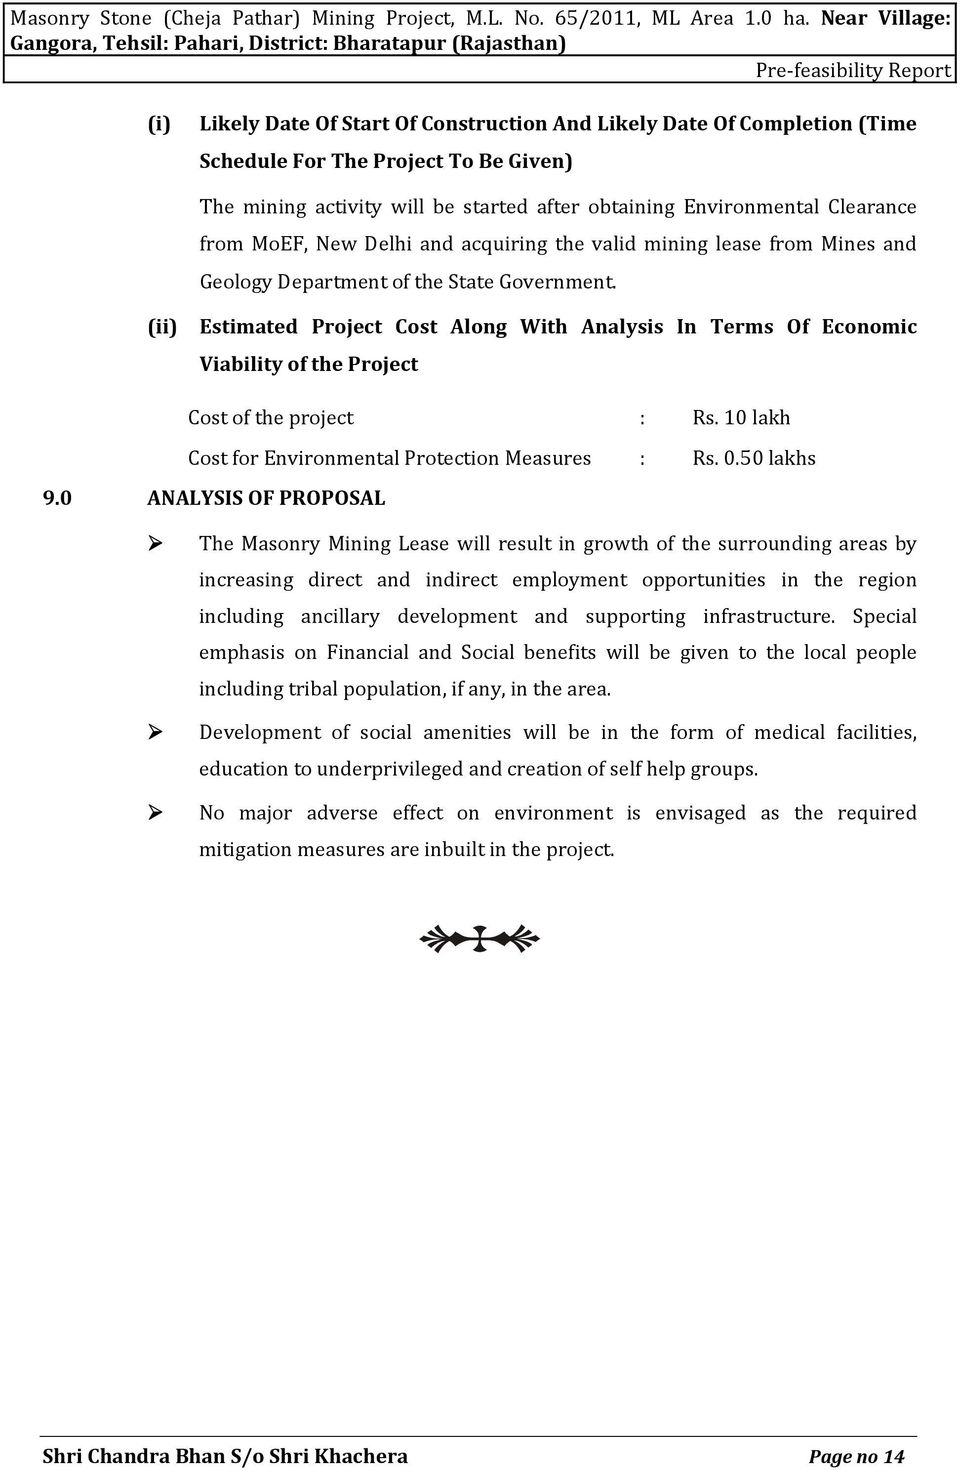 (ii) Estimated Project Cost Along With Analysis In Terms Of Economic Viability of the Project Cost of the project Cost for Environmental Protection Measures 9.0 ANALYSIS OF PROPOSAL : Rs.